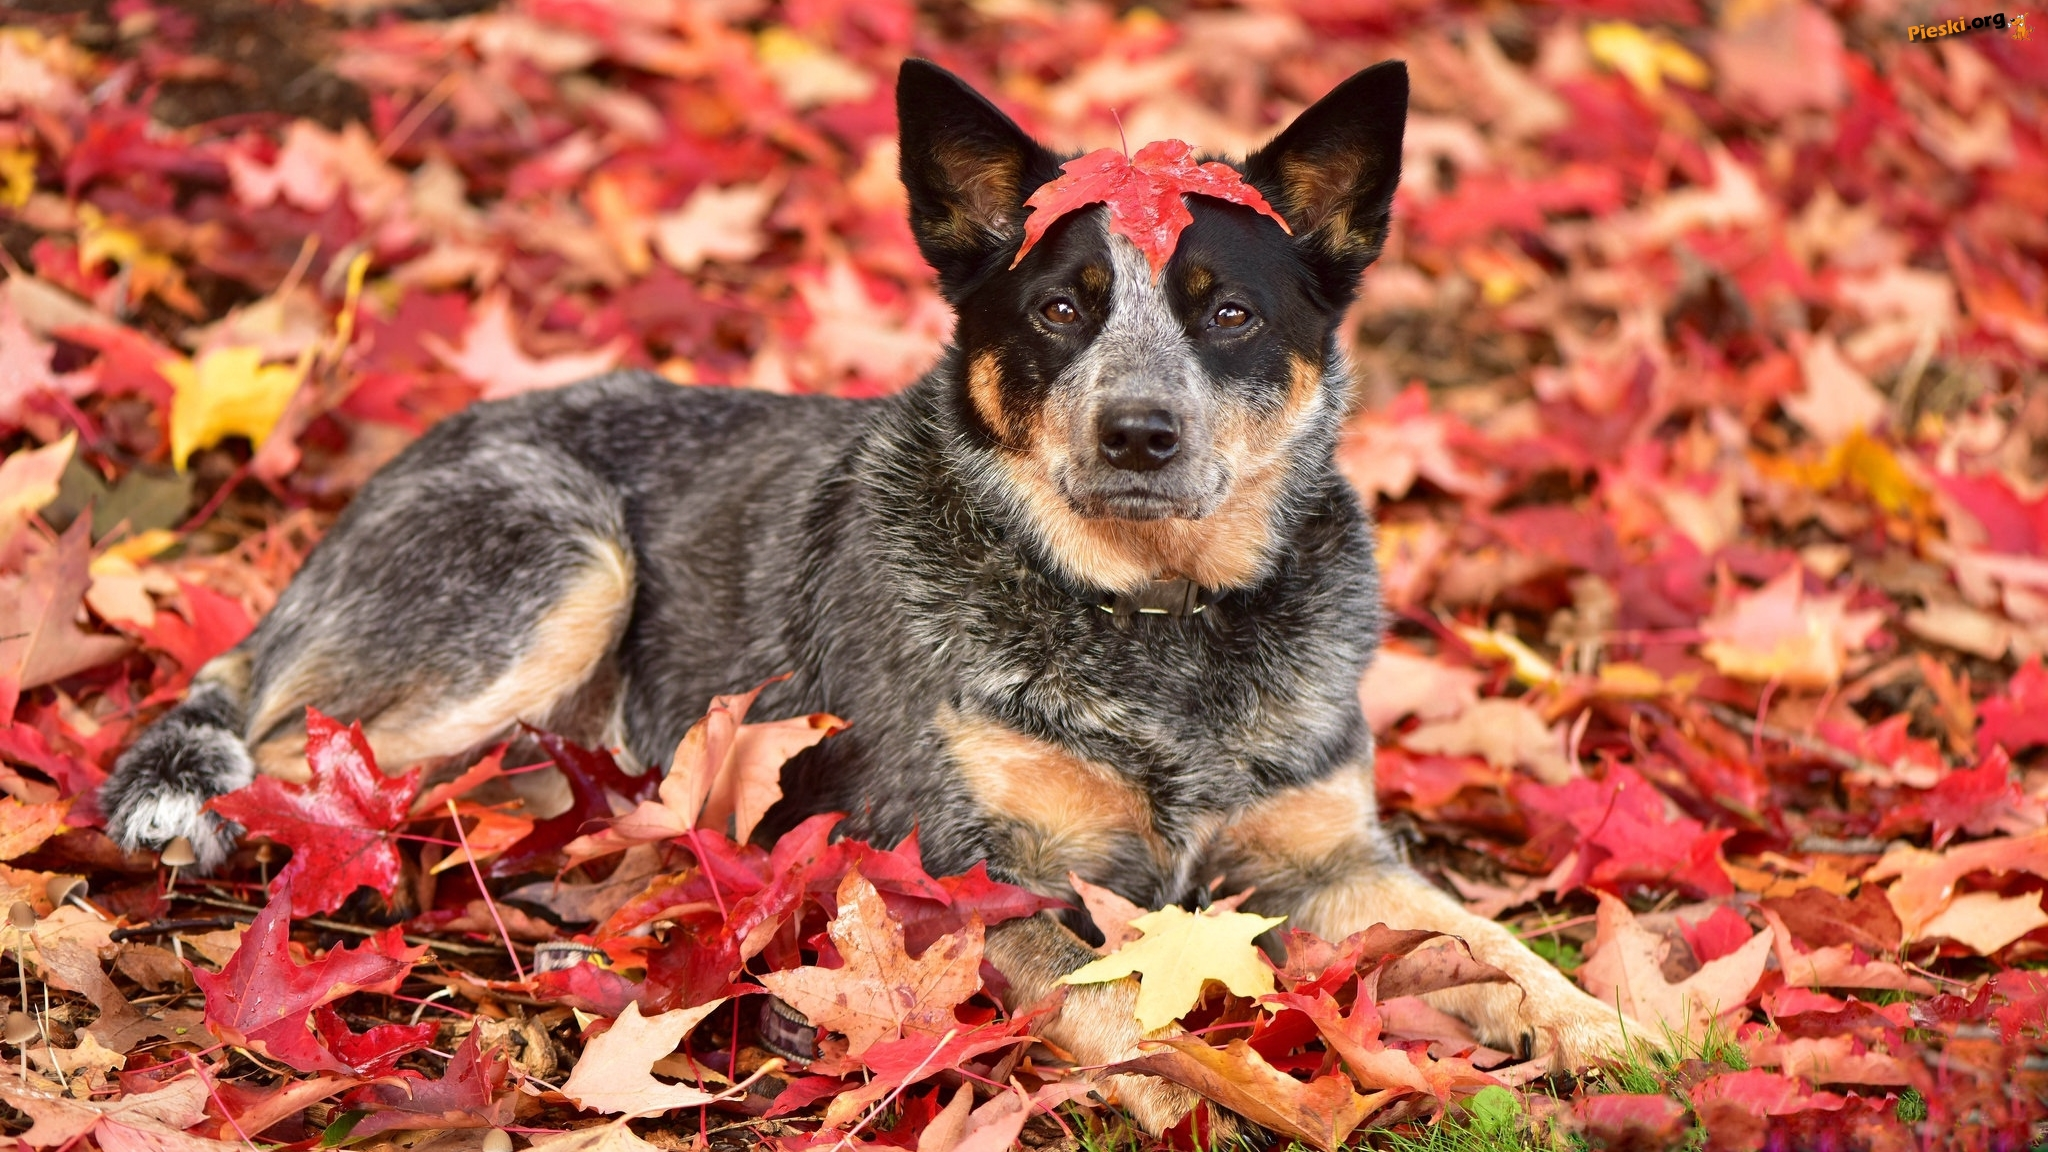 Pies, Australian cattle dog, Liście